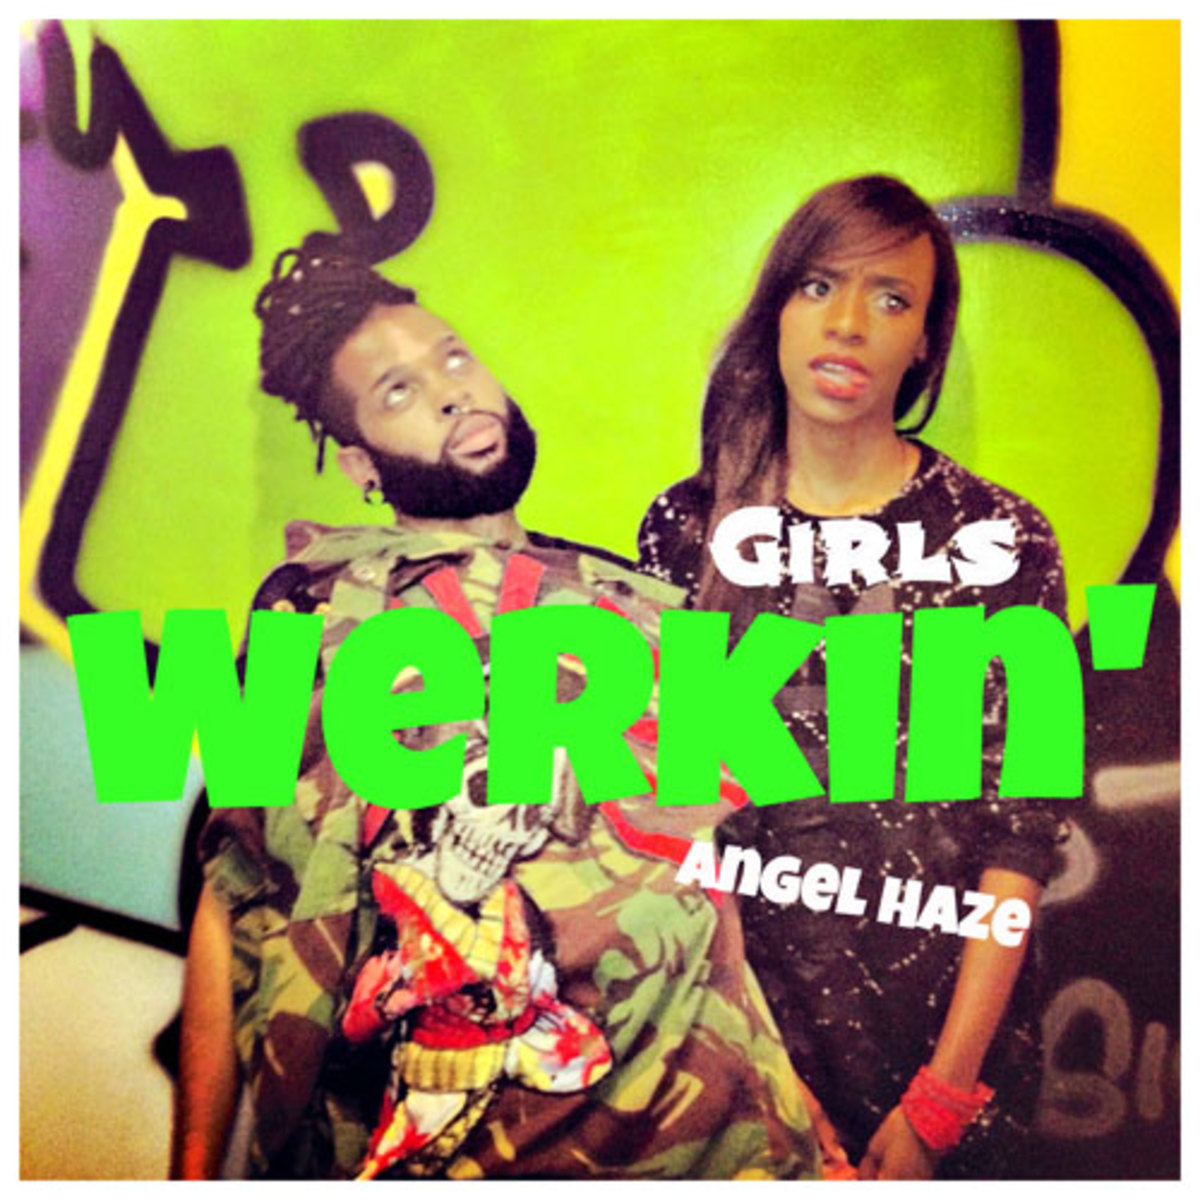 angelhaze-girlsworkin.jpg